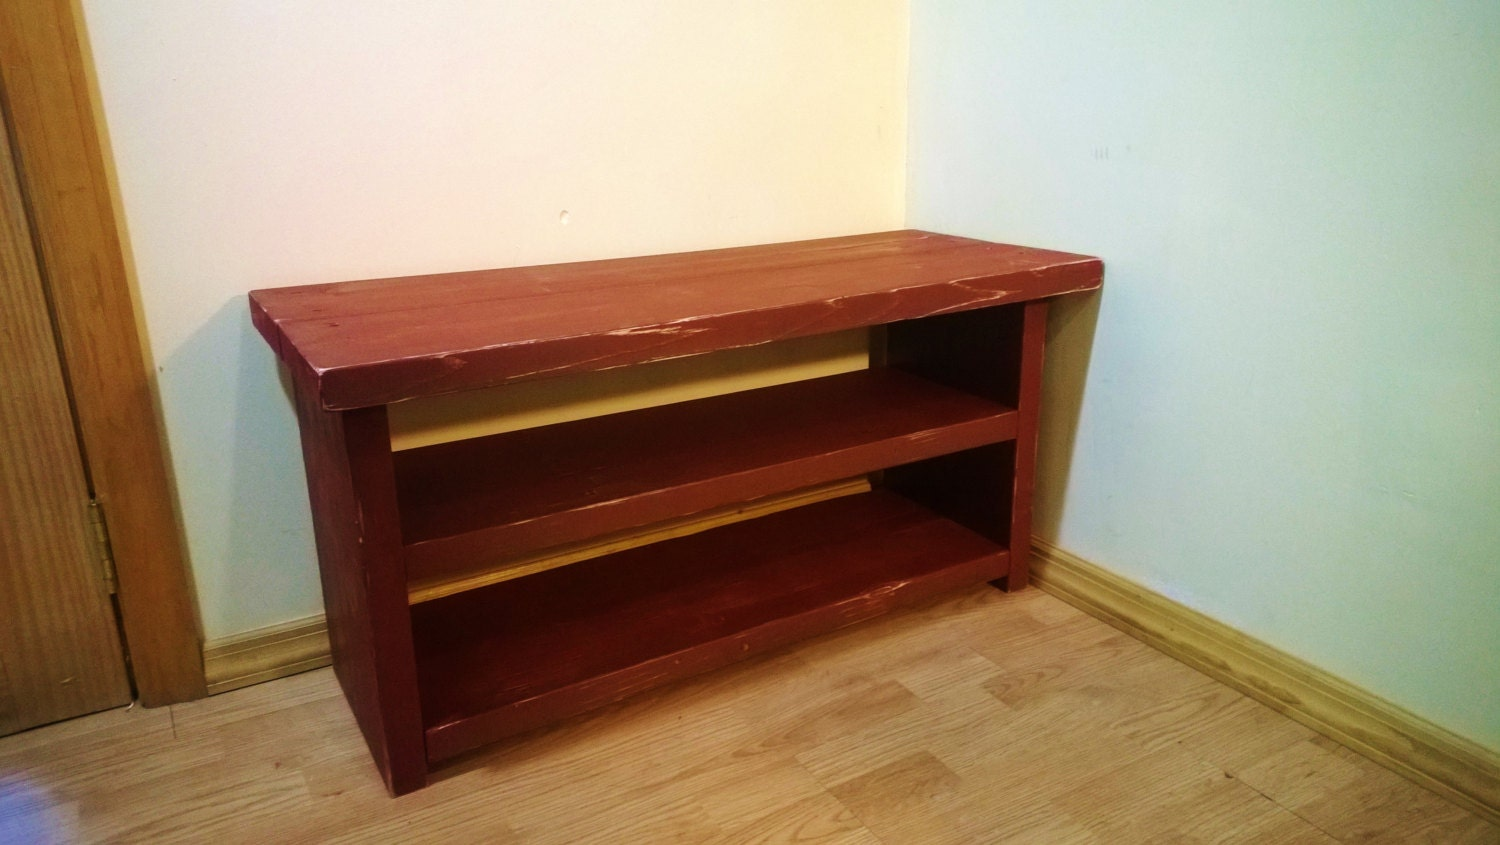 Shoe Storage Bench Rack 36 Rustic Distressed Barn Red